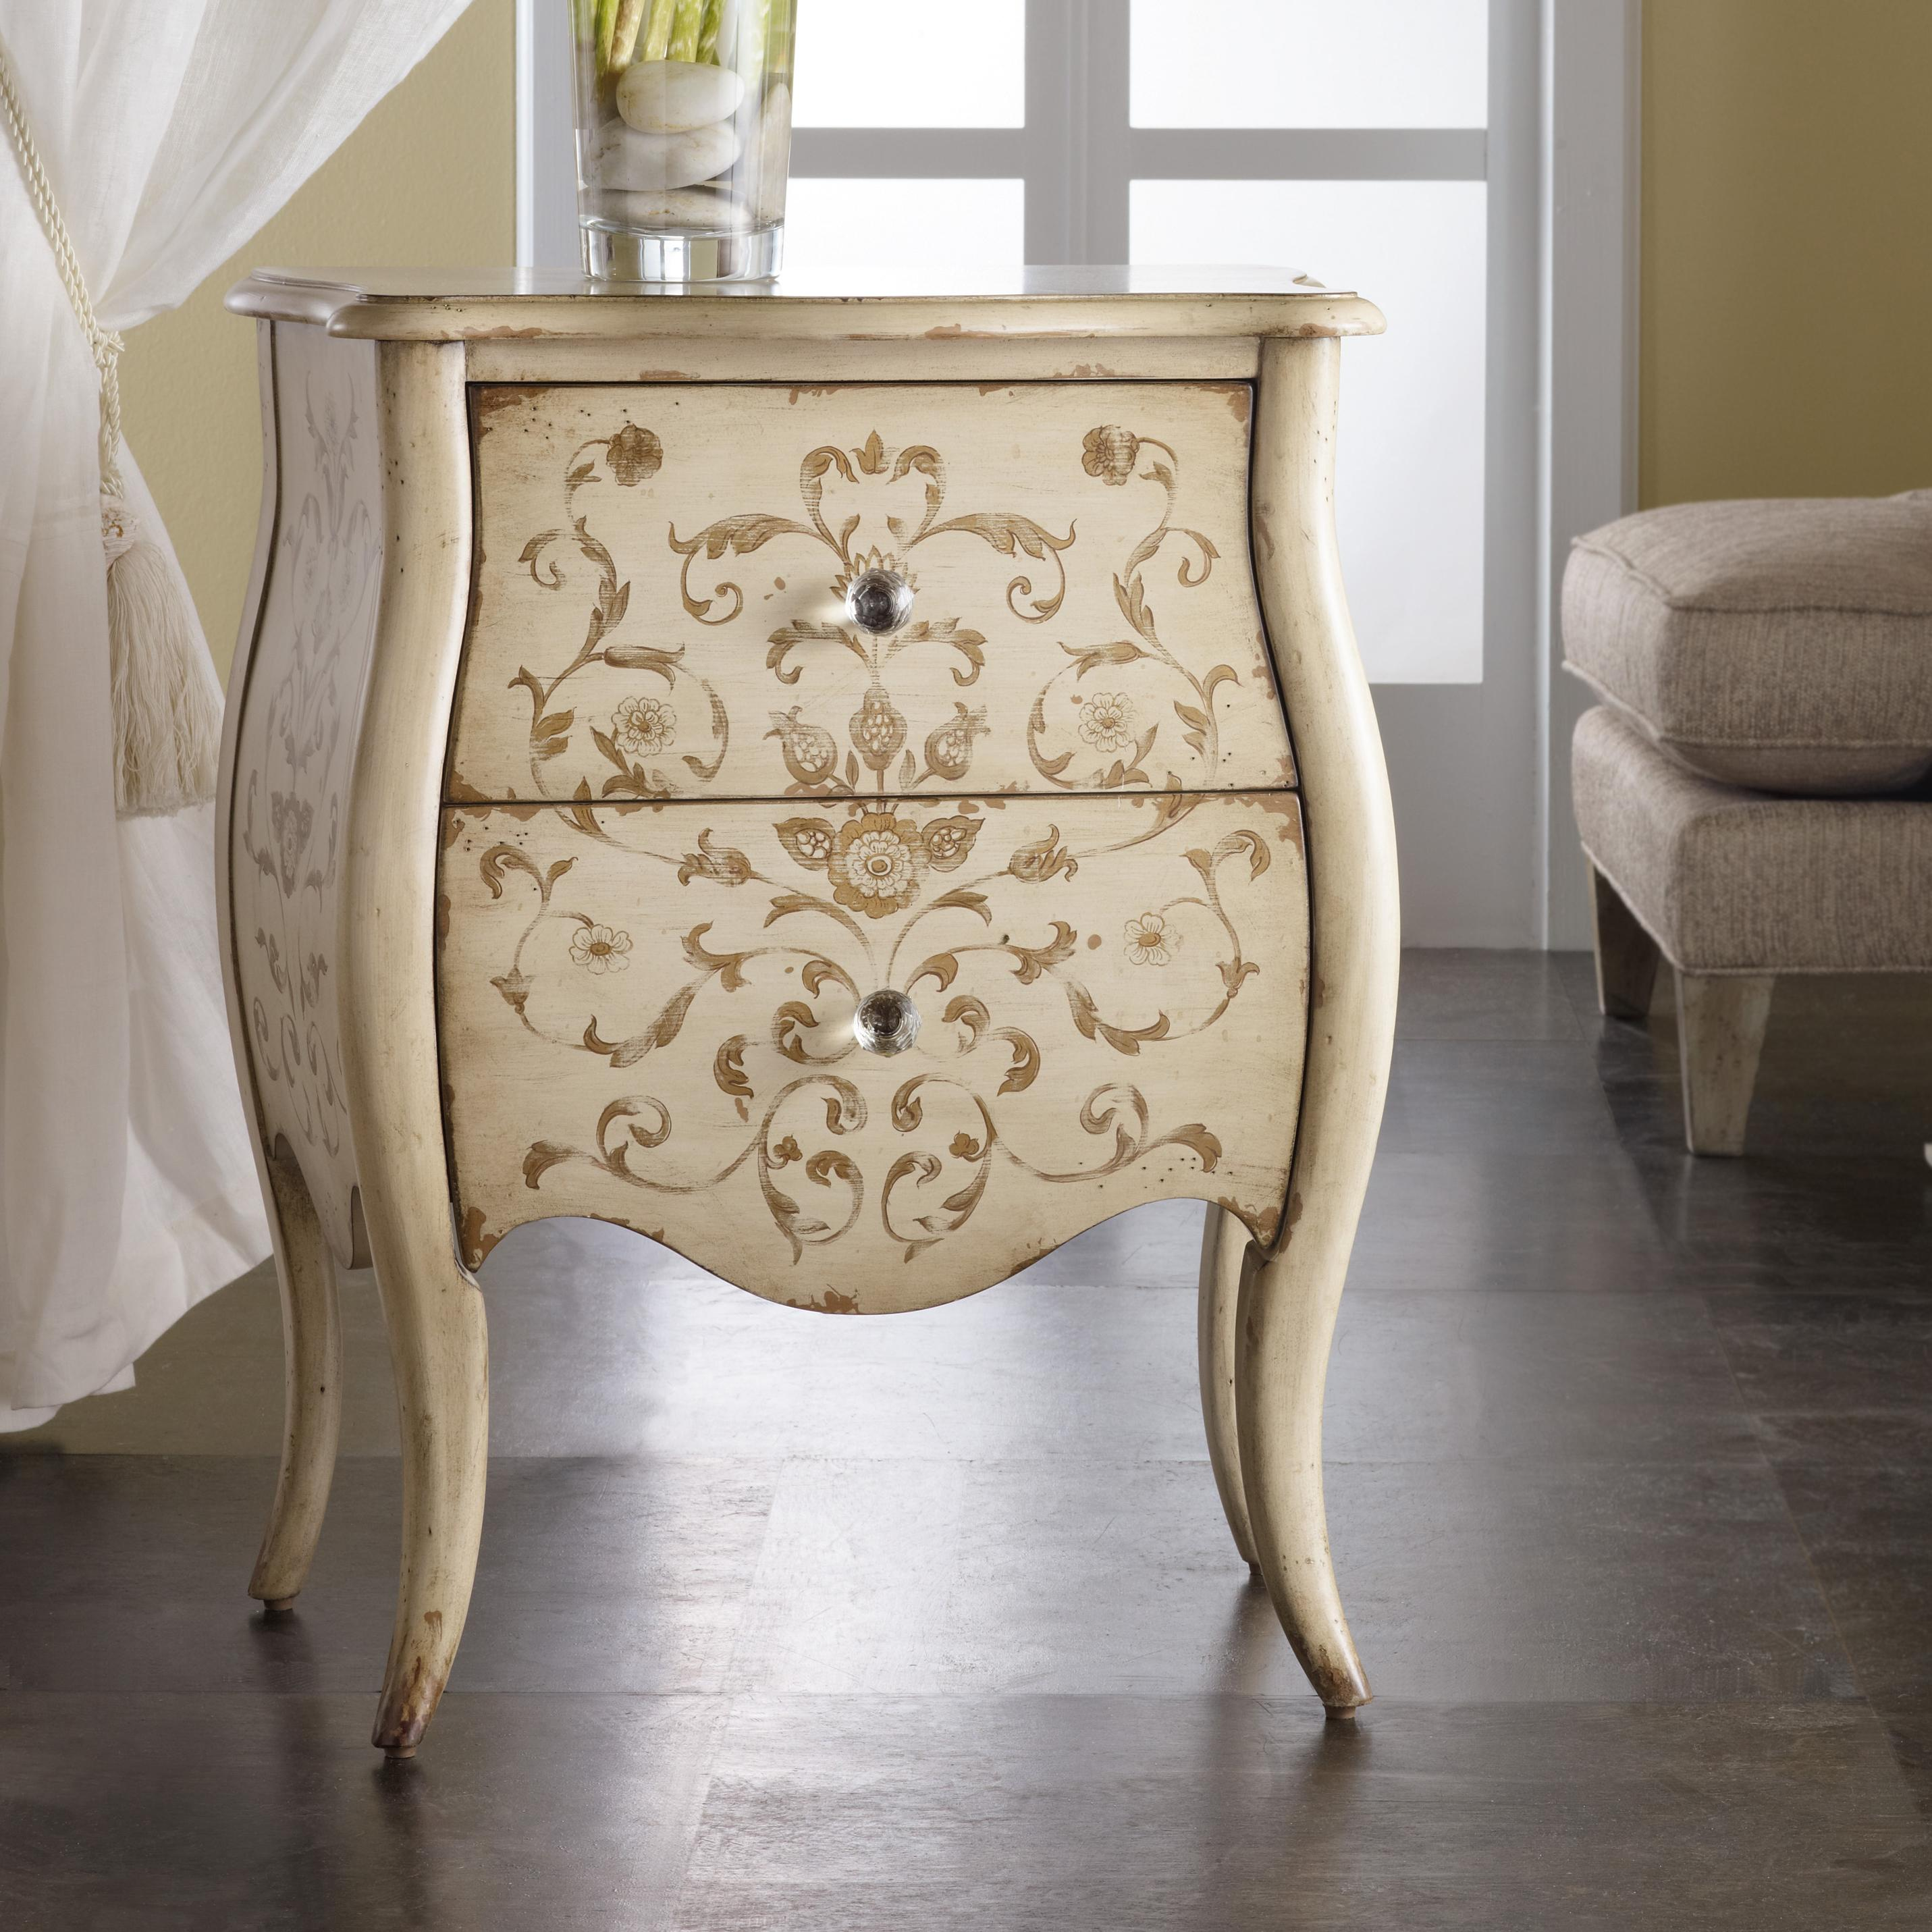 Melange Ariana Handpainted Chest by Hooker Furniture at Lagniappe Home Store